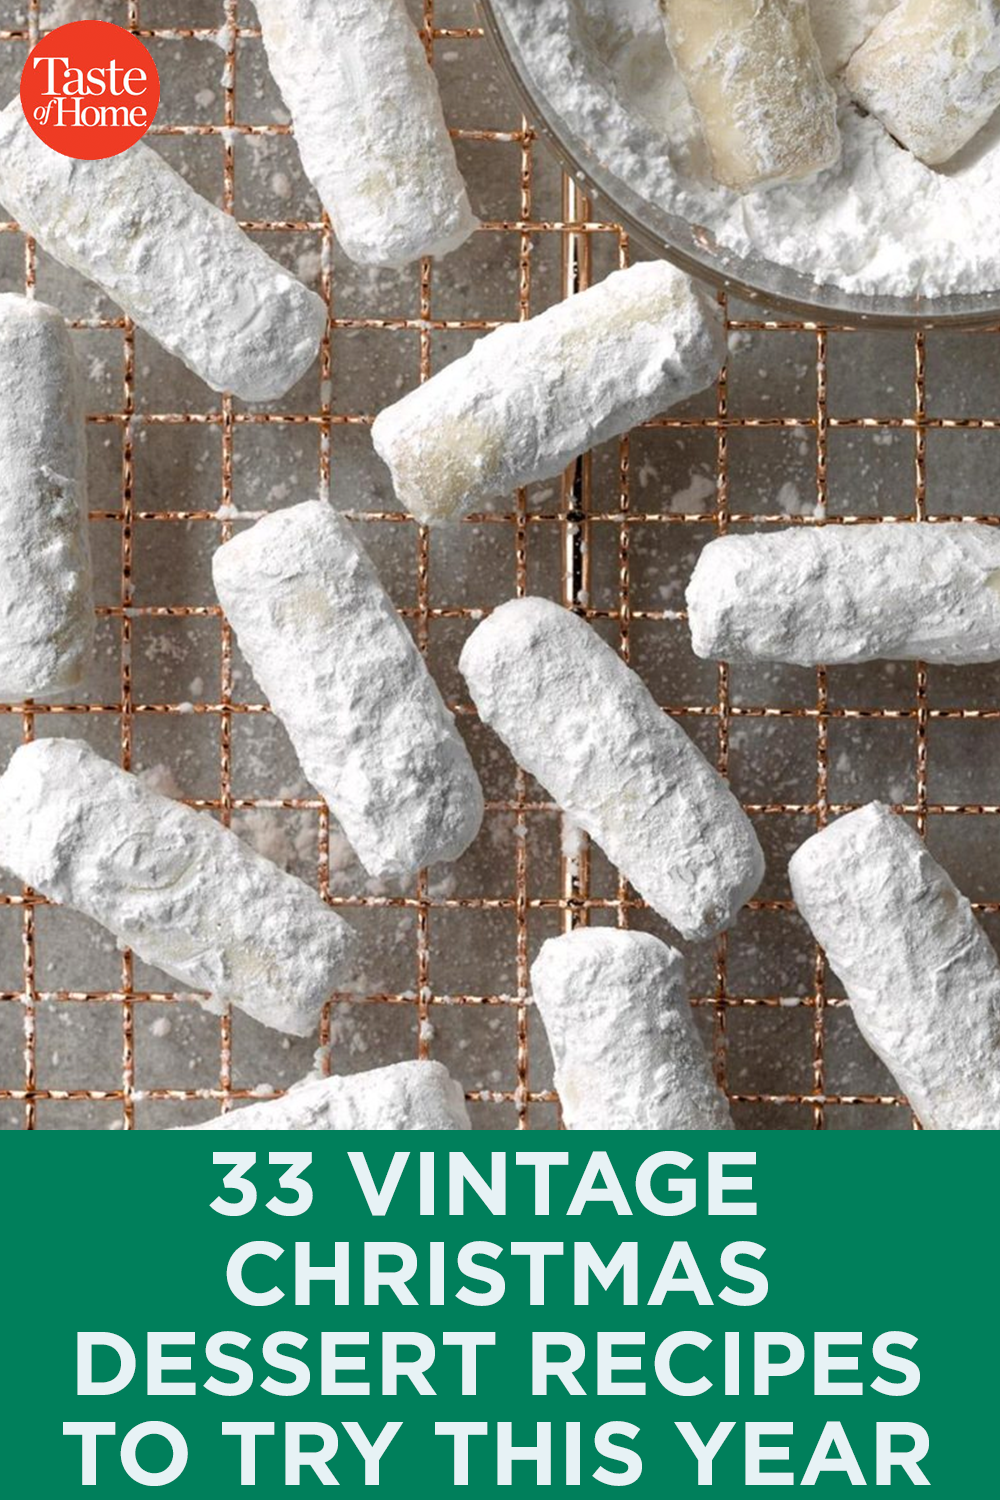 33 Vintage Christmas Dessert Recipes to Try This Year